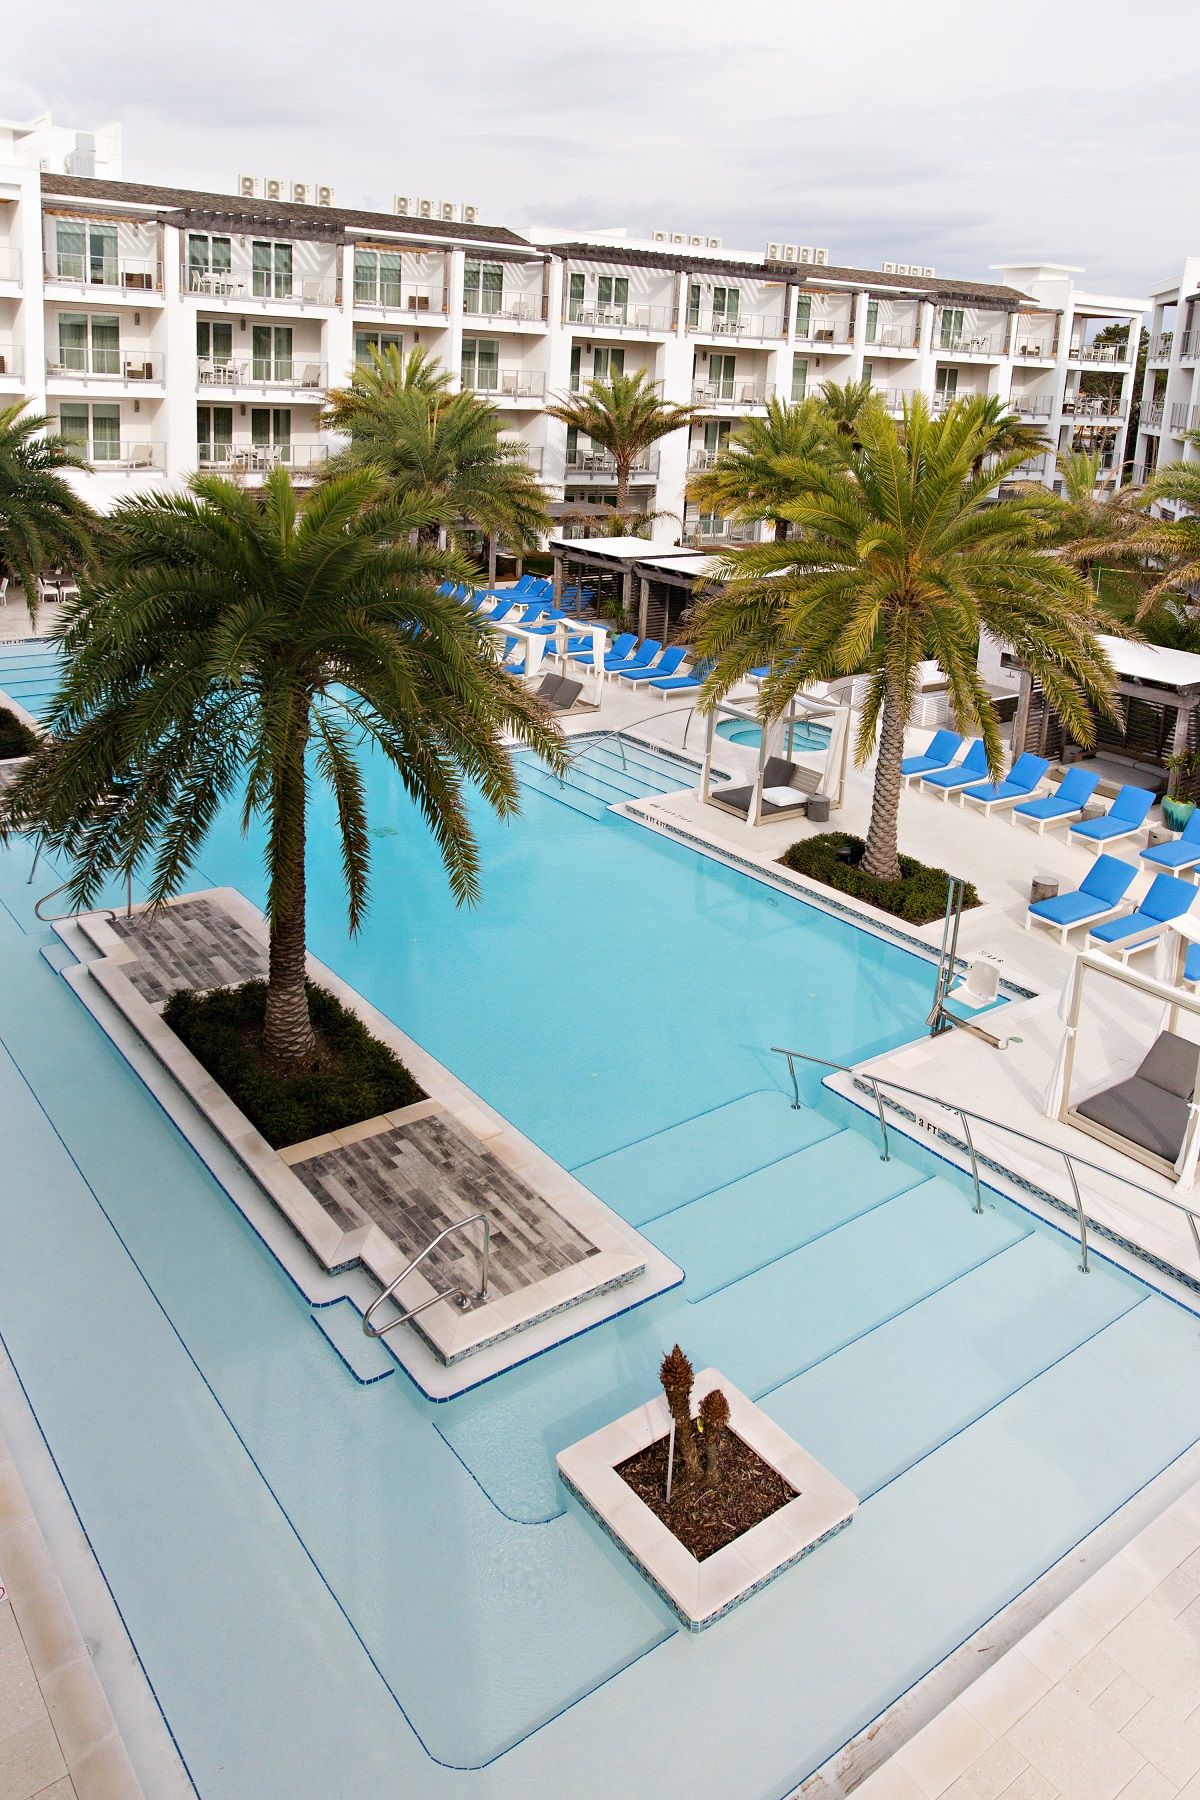 The Best of 30A + 2 Bedroom 2 Night Condo by ResortQuest by Wyndham Vacation Rentals Giveaway!!